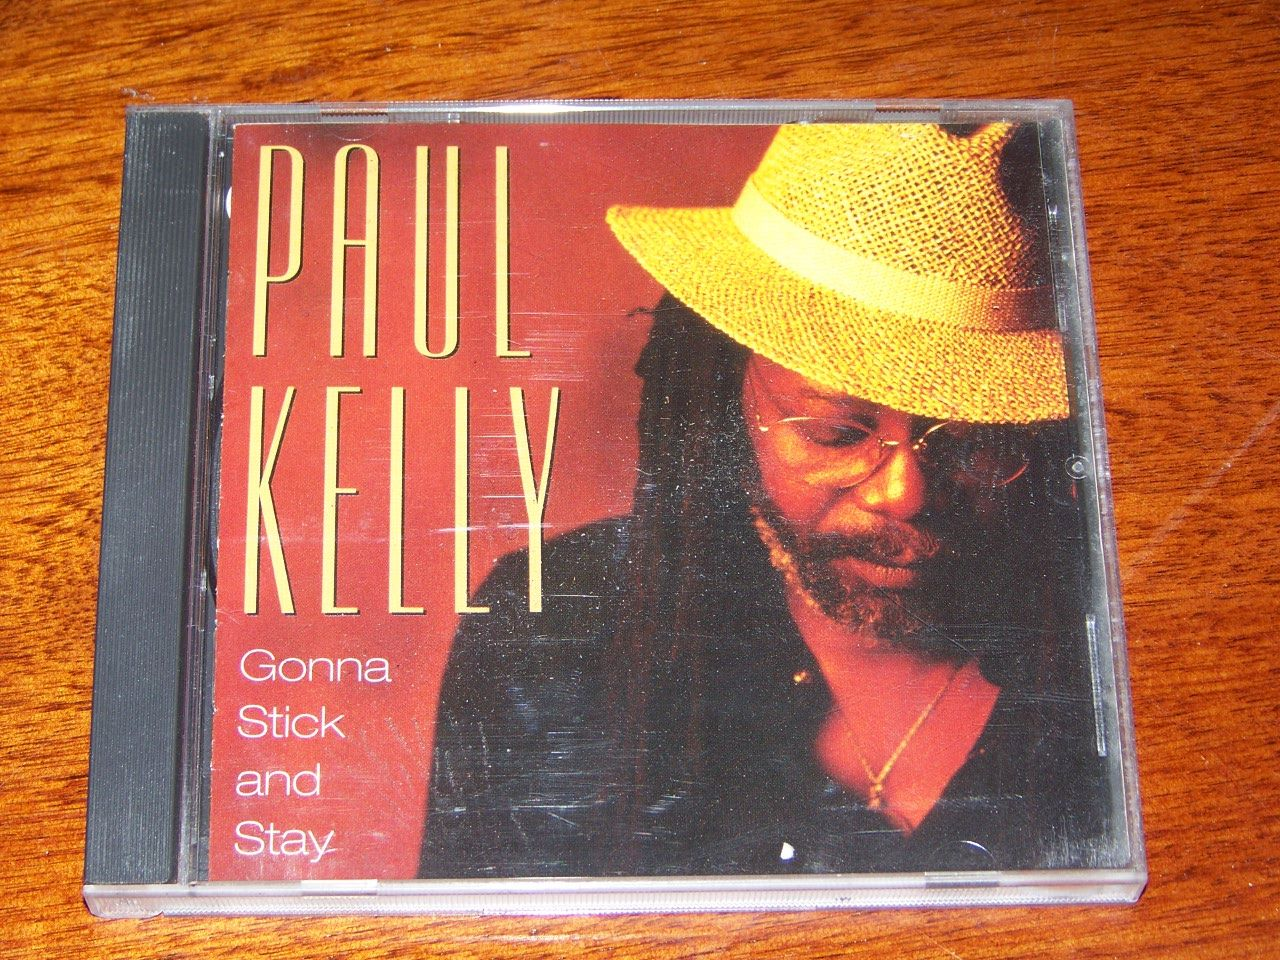 Gonna-Stick-and-Stay-Paul-Kelly-NEAR-MINT-1993-Blues-CD